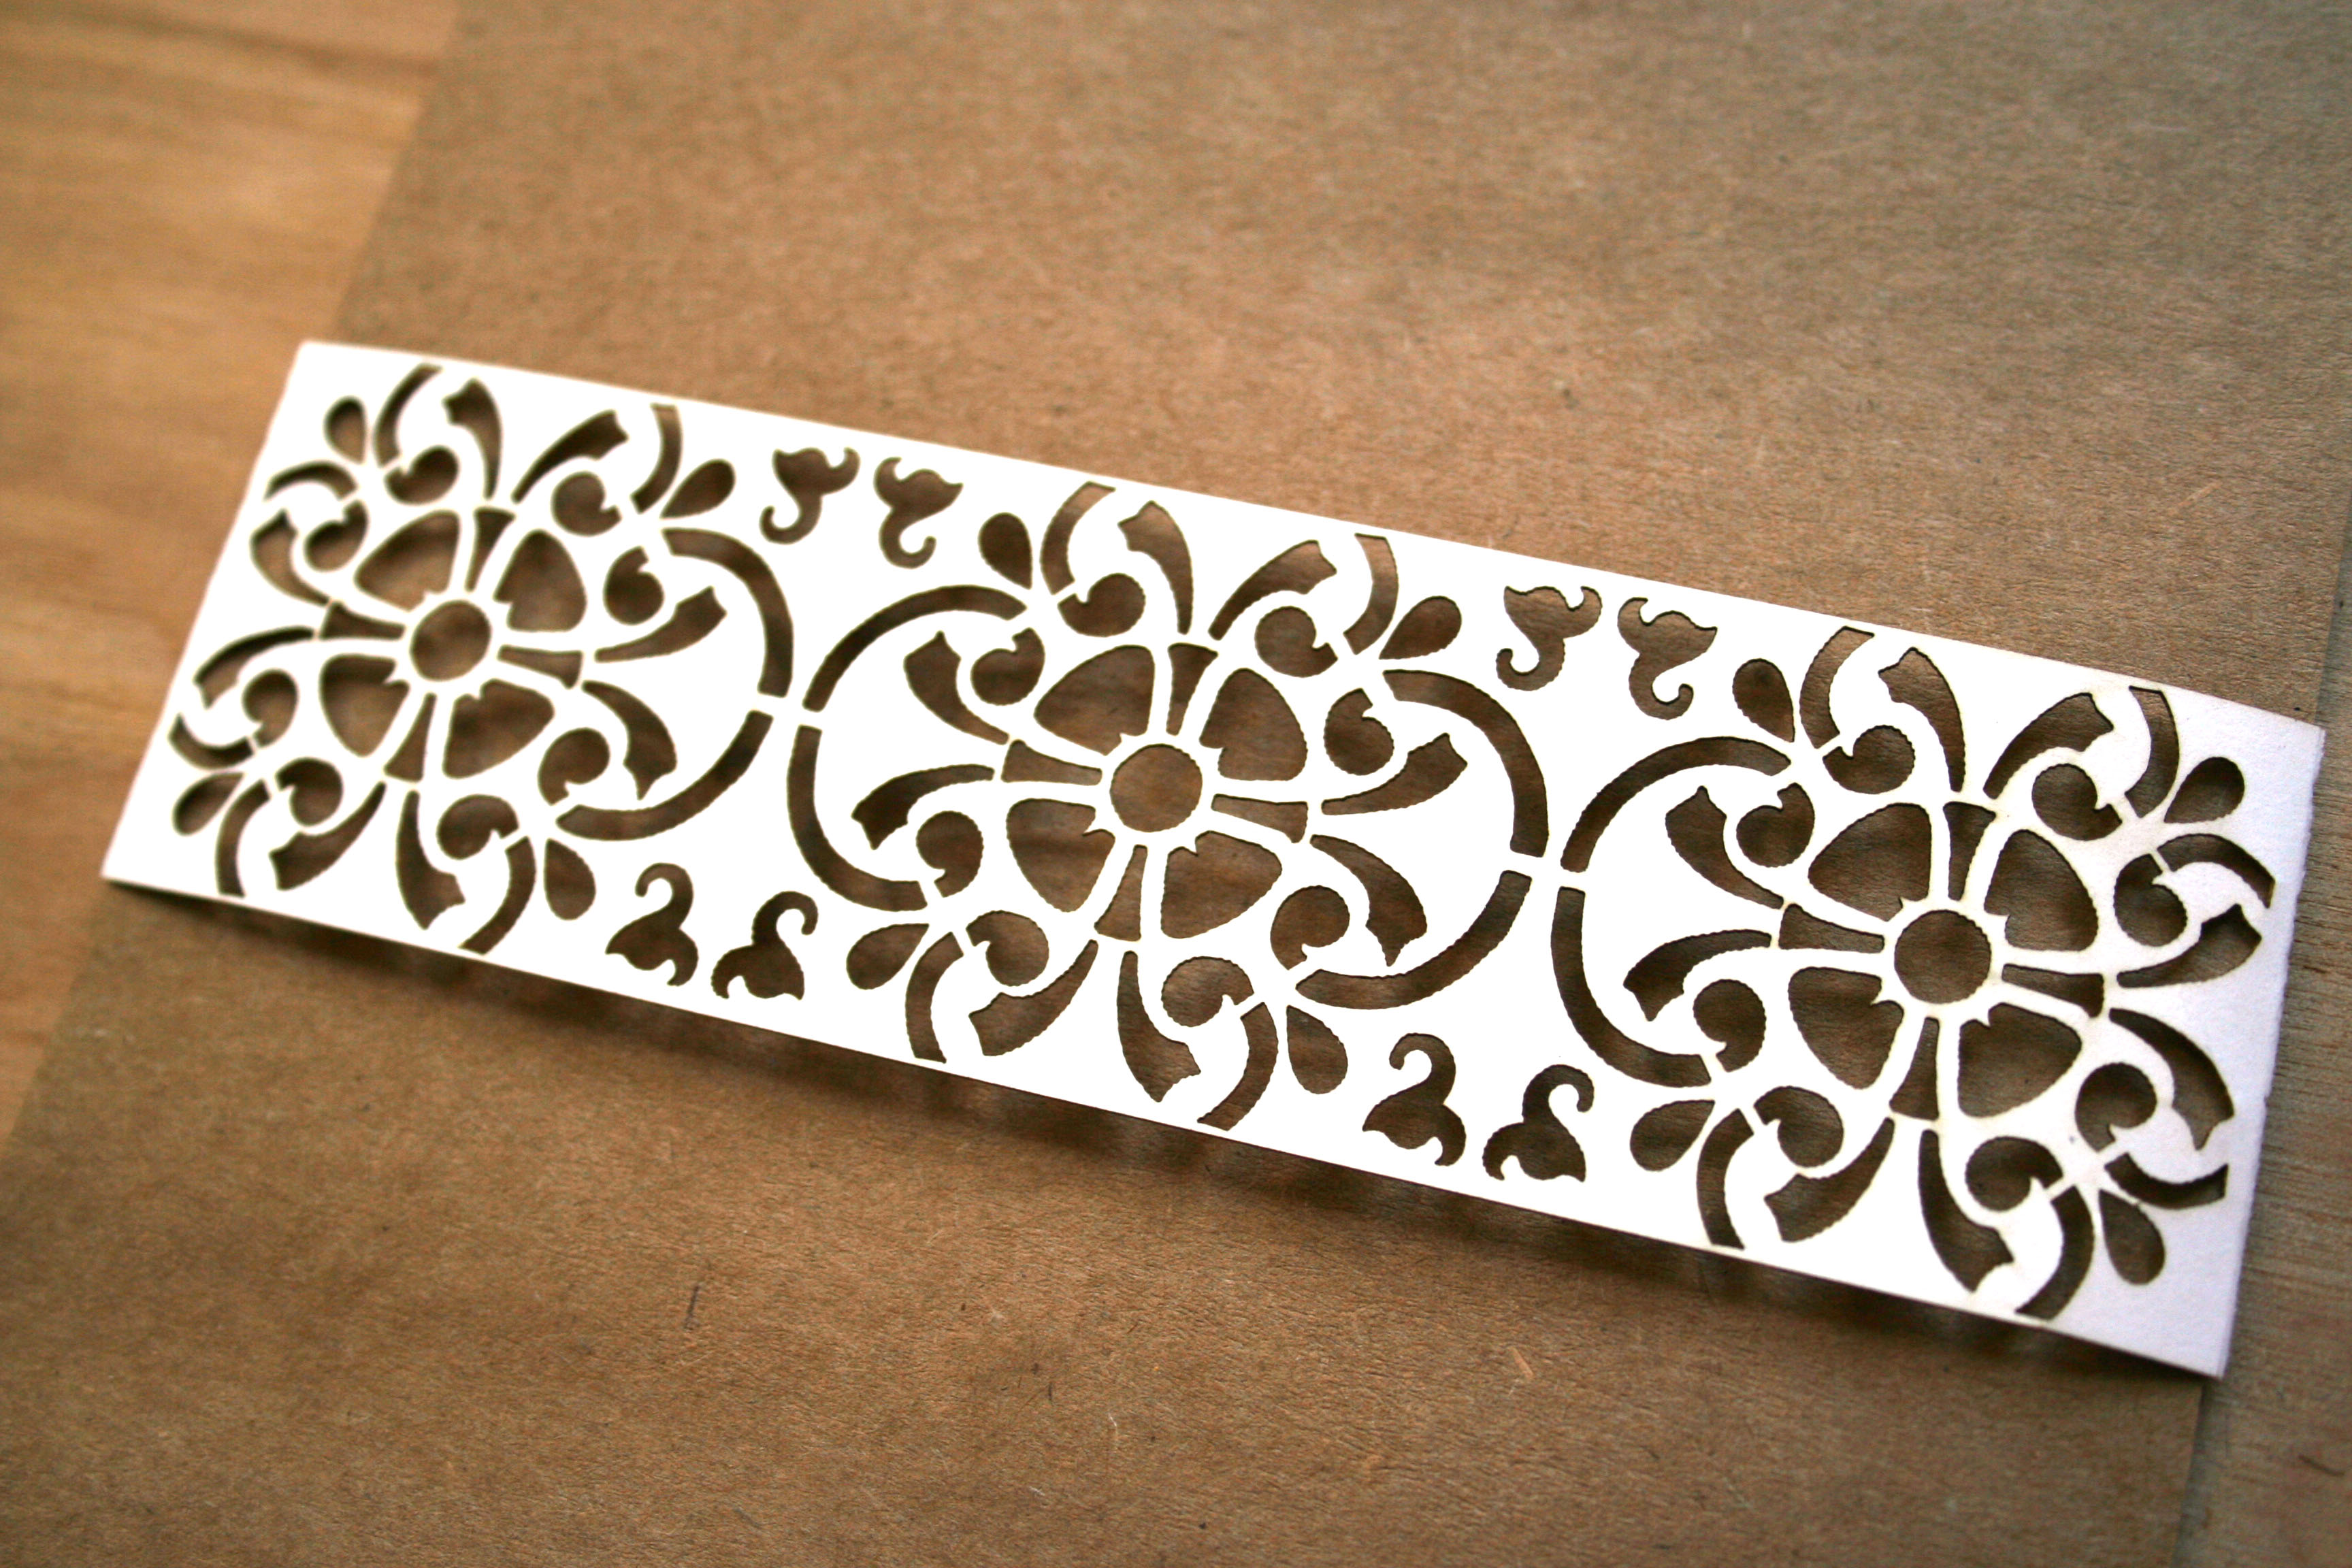 The Cost of Laser Cutting or Engraving – sofia invitations blog for Laser Cut Designs Paper  183qdu